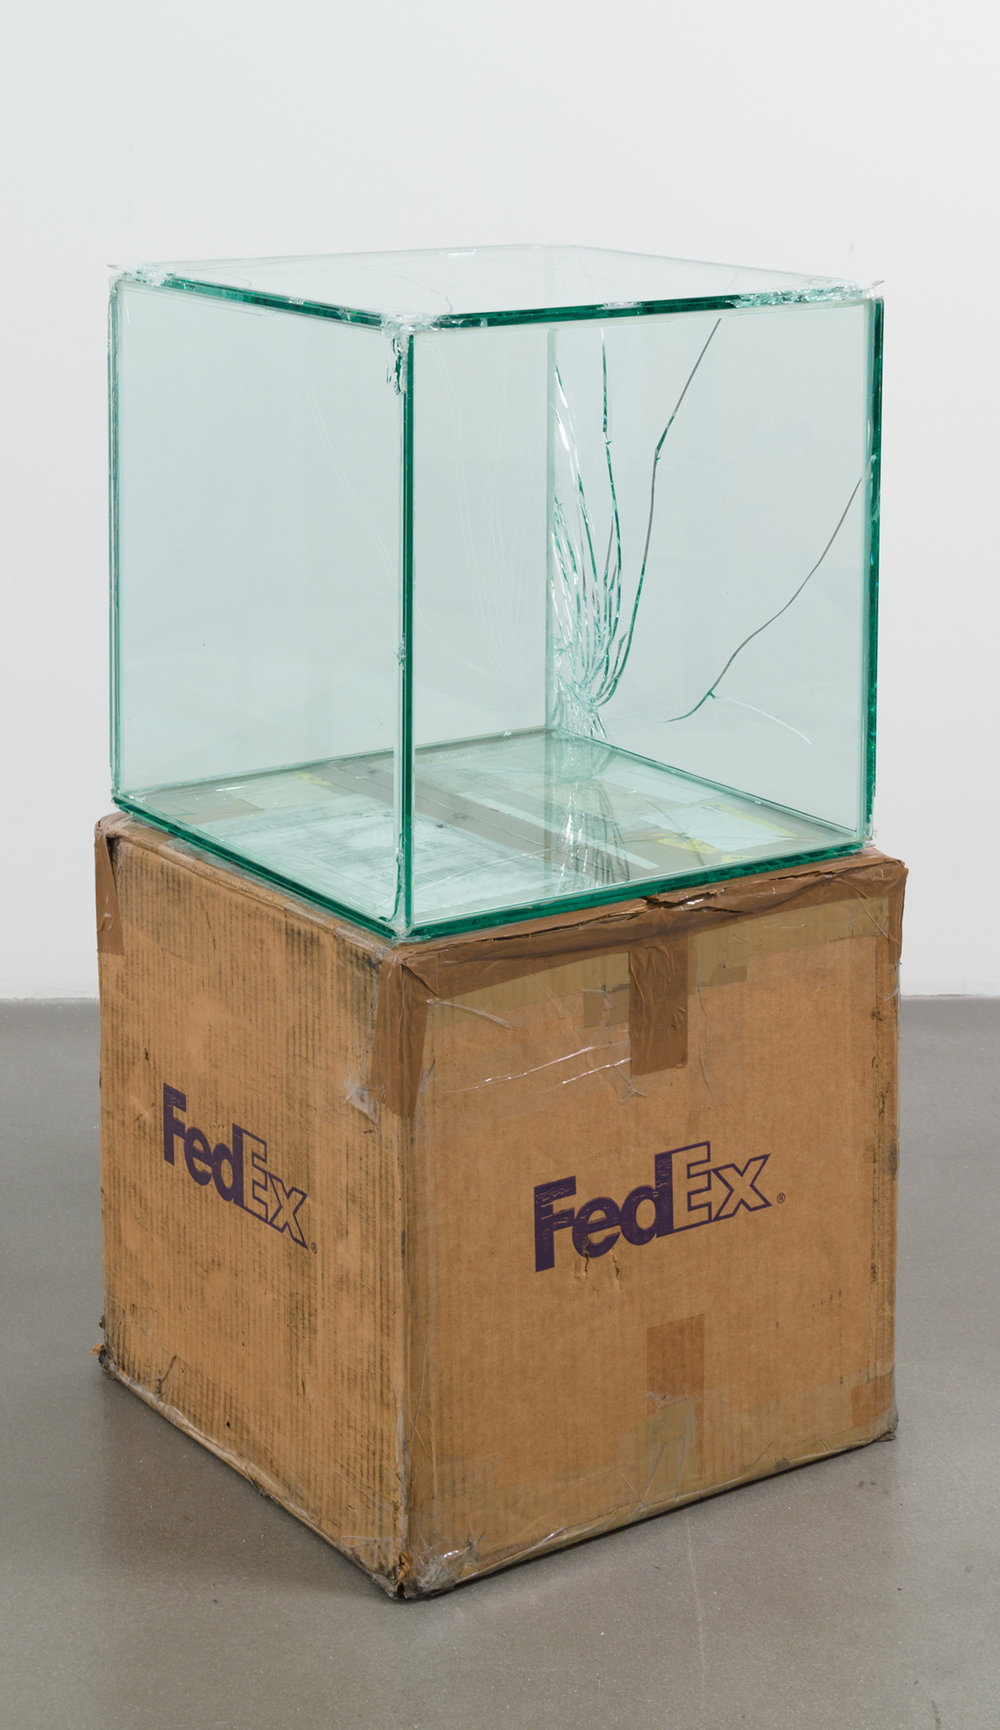 FedEx® Kraft Box  © 2005 FEDEX 330504 10/05 SSCC, Priority Overnight, Los Angeles–Miami trk#865344981347, October 29–30, 2009, Priority Overnight, Miami–Ann Arbor trk#861049125160, March 3–4, 2009, Standard Overnight, Ann Arbor–Los Angeles trk#868274625738, July 9–10, 2009, International Priority, Los Angeles–London trk#798269126180, April 10–12, 2012, International Priority, London–Los Angeles trk#875532113057, May 22–23, 2012, Standard Overnight, Los Angeles–New York trk#774901766211, November 4–5, 2015, Standard Overnight, New York–Los Angeles trk#775241327453, December 21–22, 2015    2009–   Laminated glass, FedEx shipping box, accrued FedEx shipping and tracking labels, silicone, metal, tape  16 x 16 x 16 inches   Travel Pictures, 2012    Great Hall Exhibition, 2015